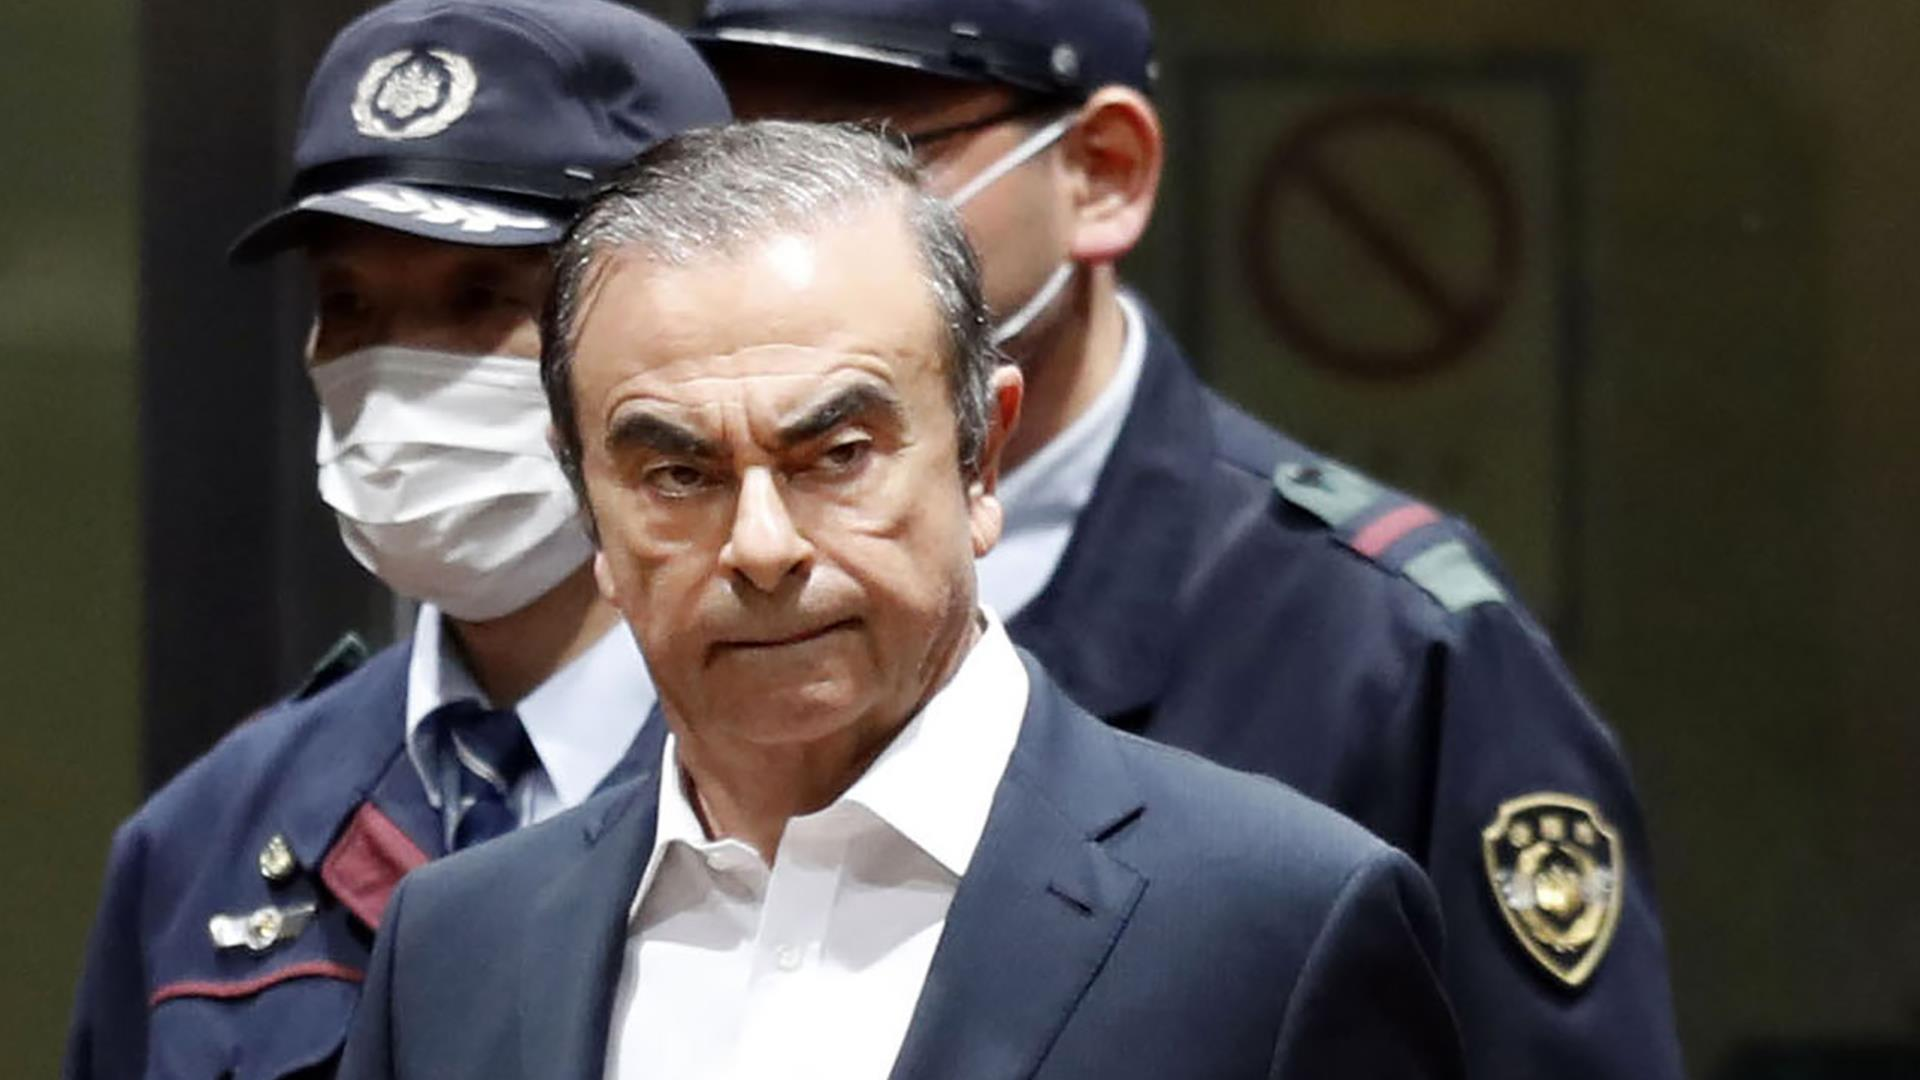 Turkey arrests pilots in connection to Carlos Ghosn's escape to Lebanon